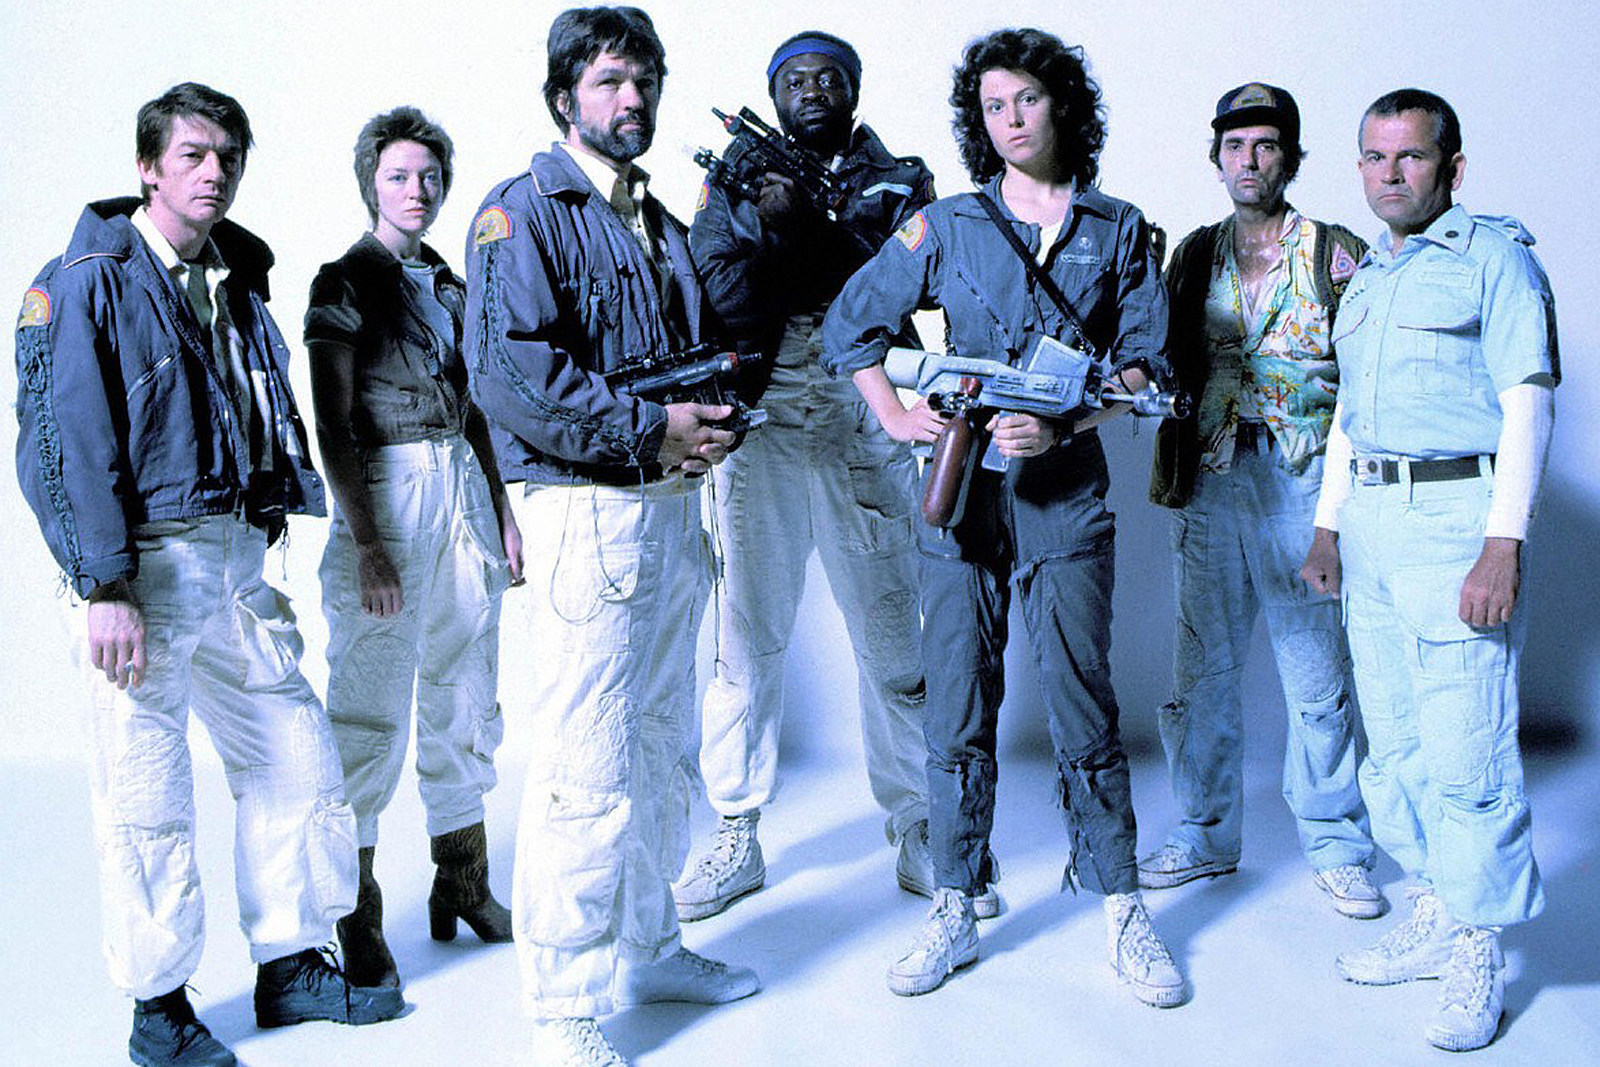 40 Years Ago: The 'Alien' Cast Gets an Actual Terrifying Surprise